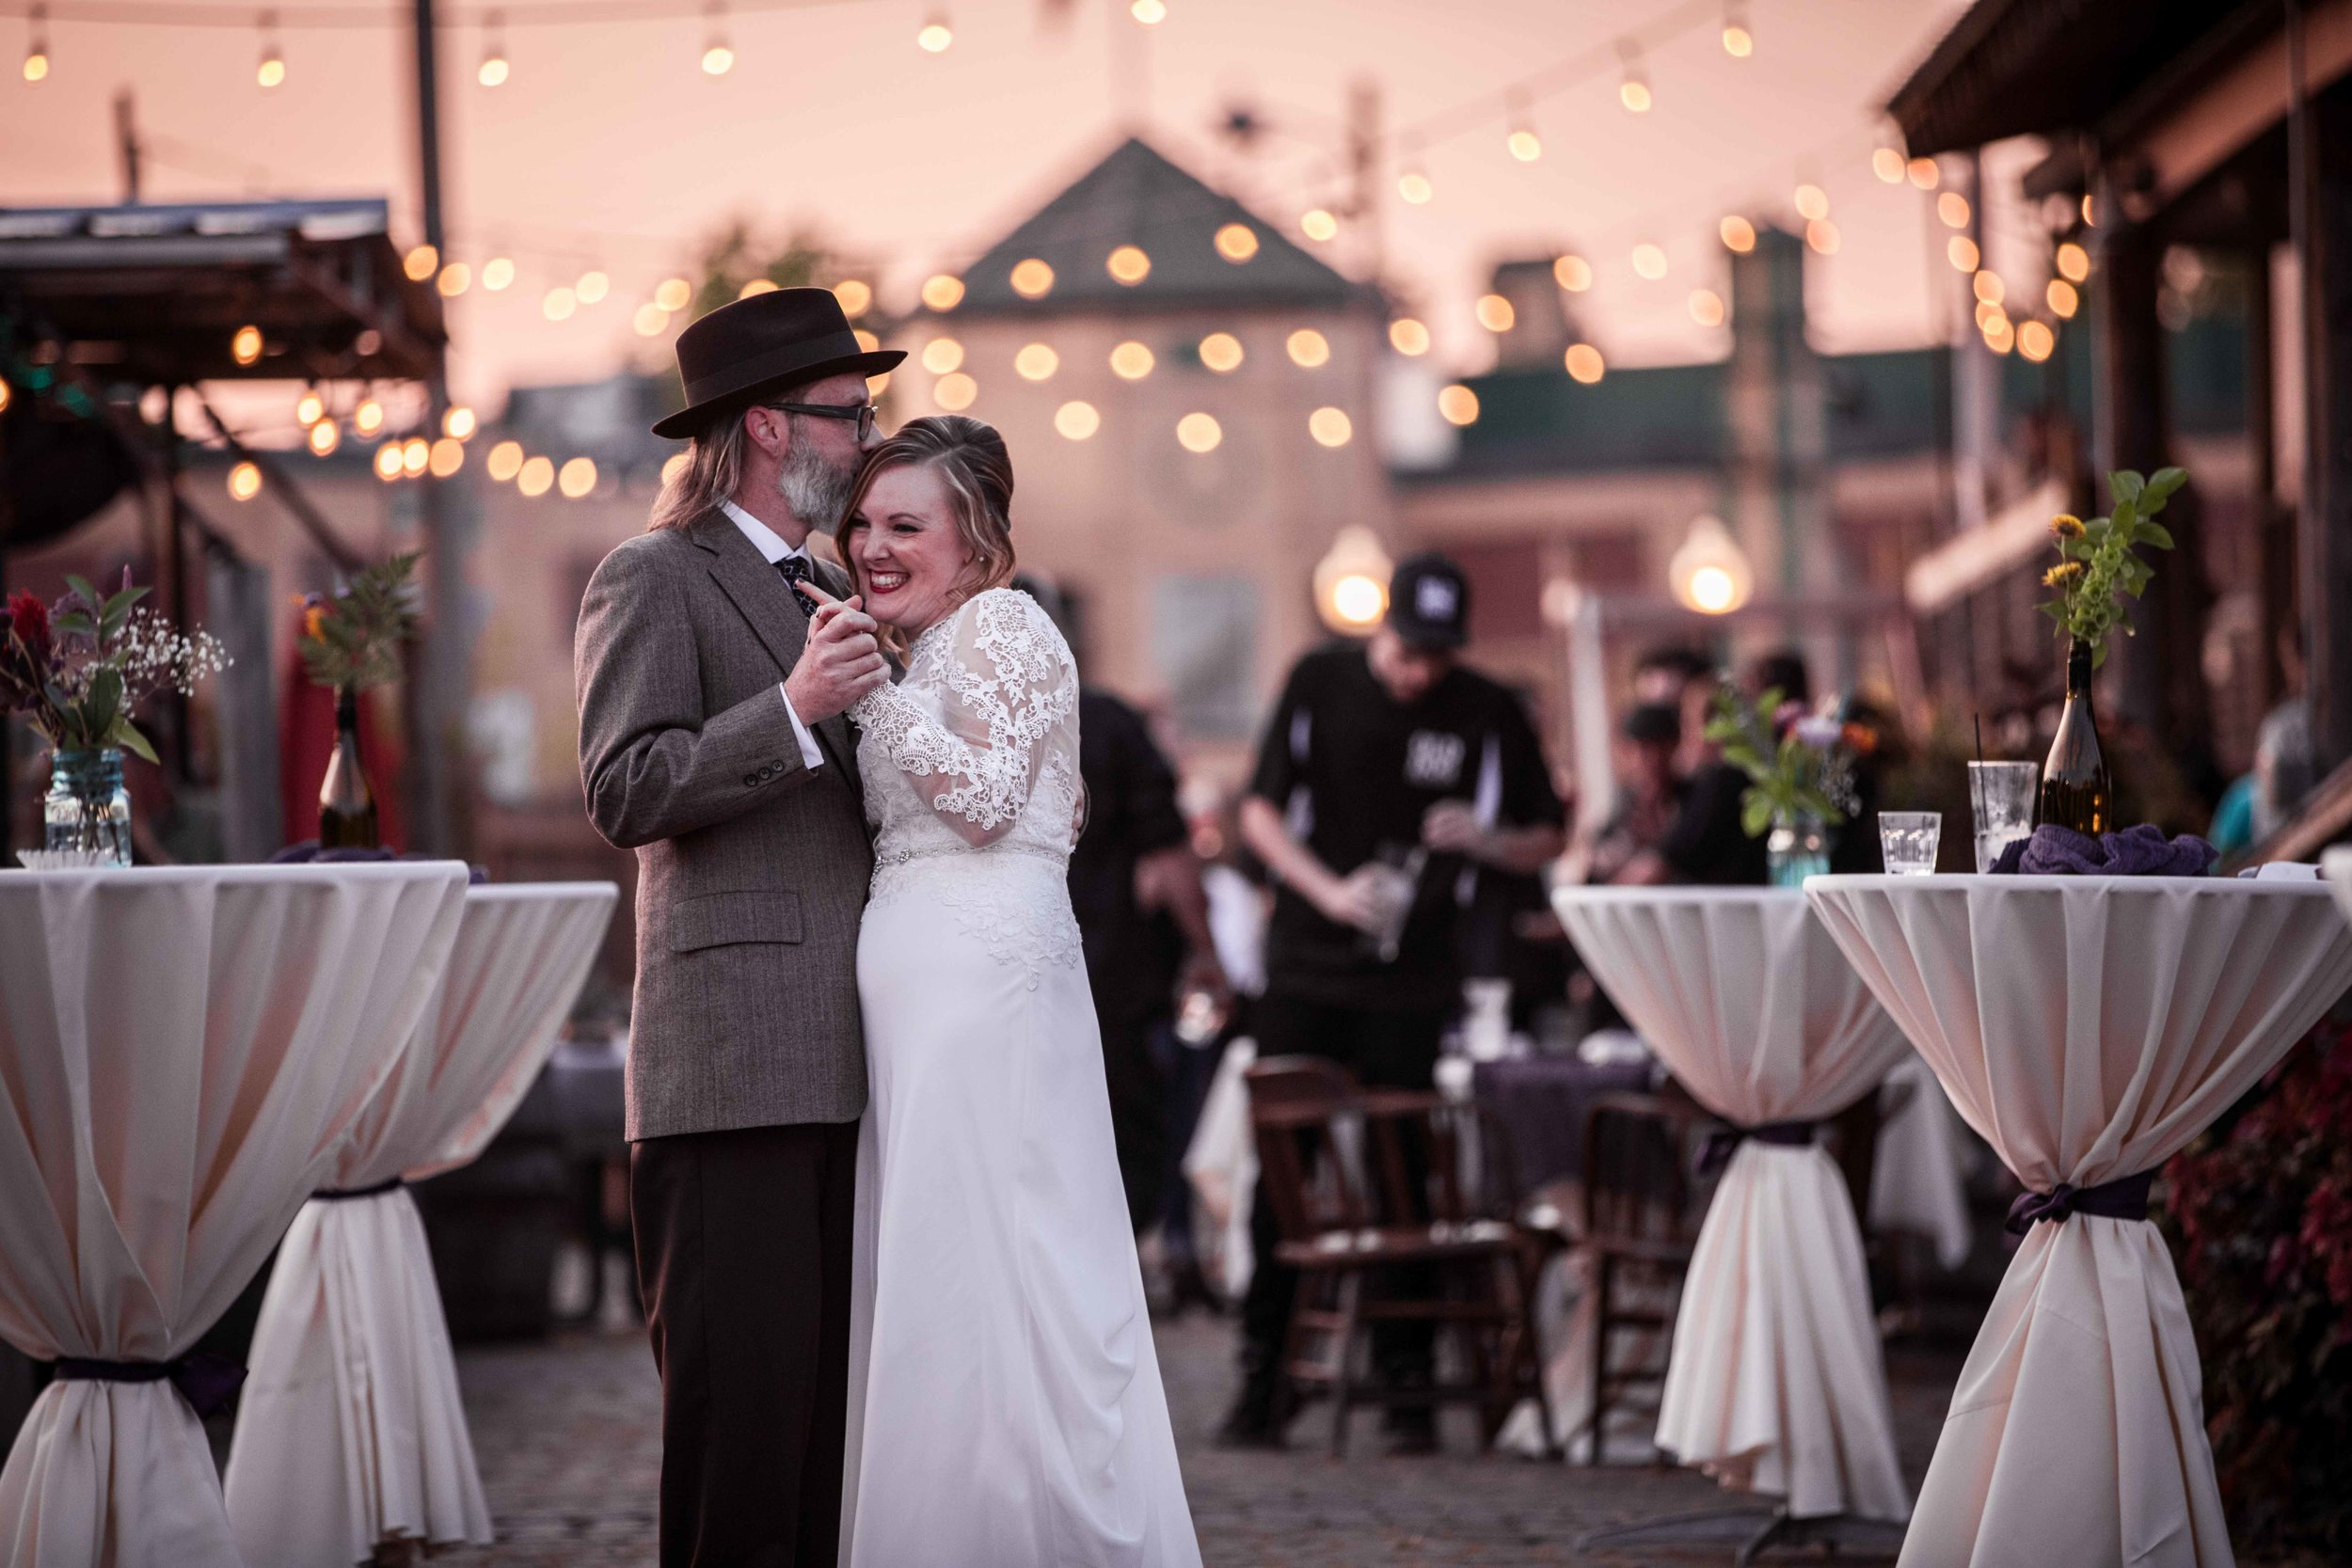 The newly weds share their first dance at Old Dog Tavern during the after party